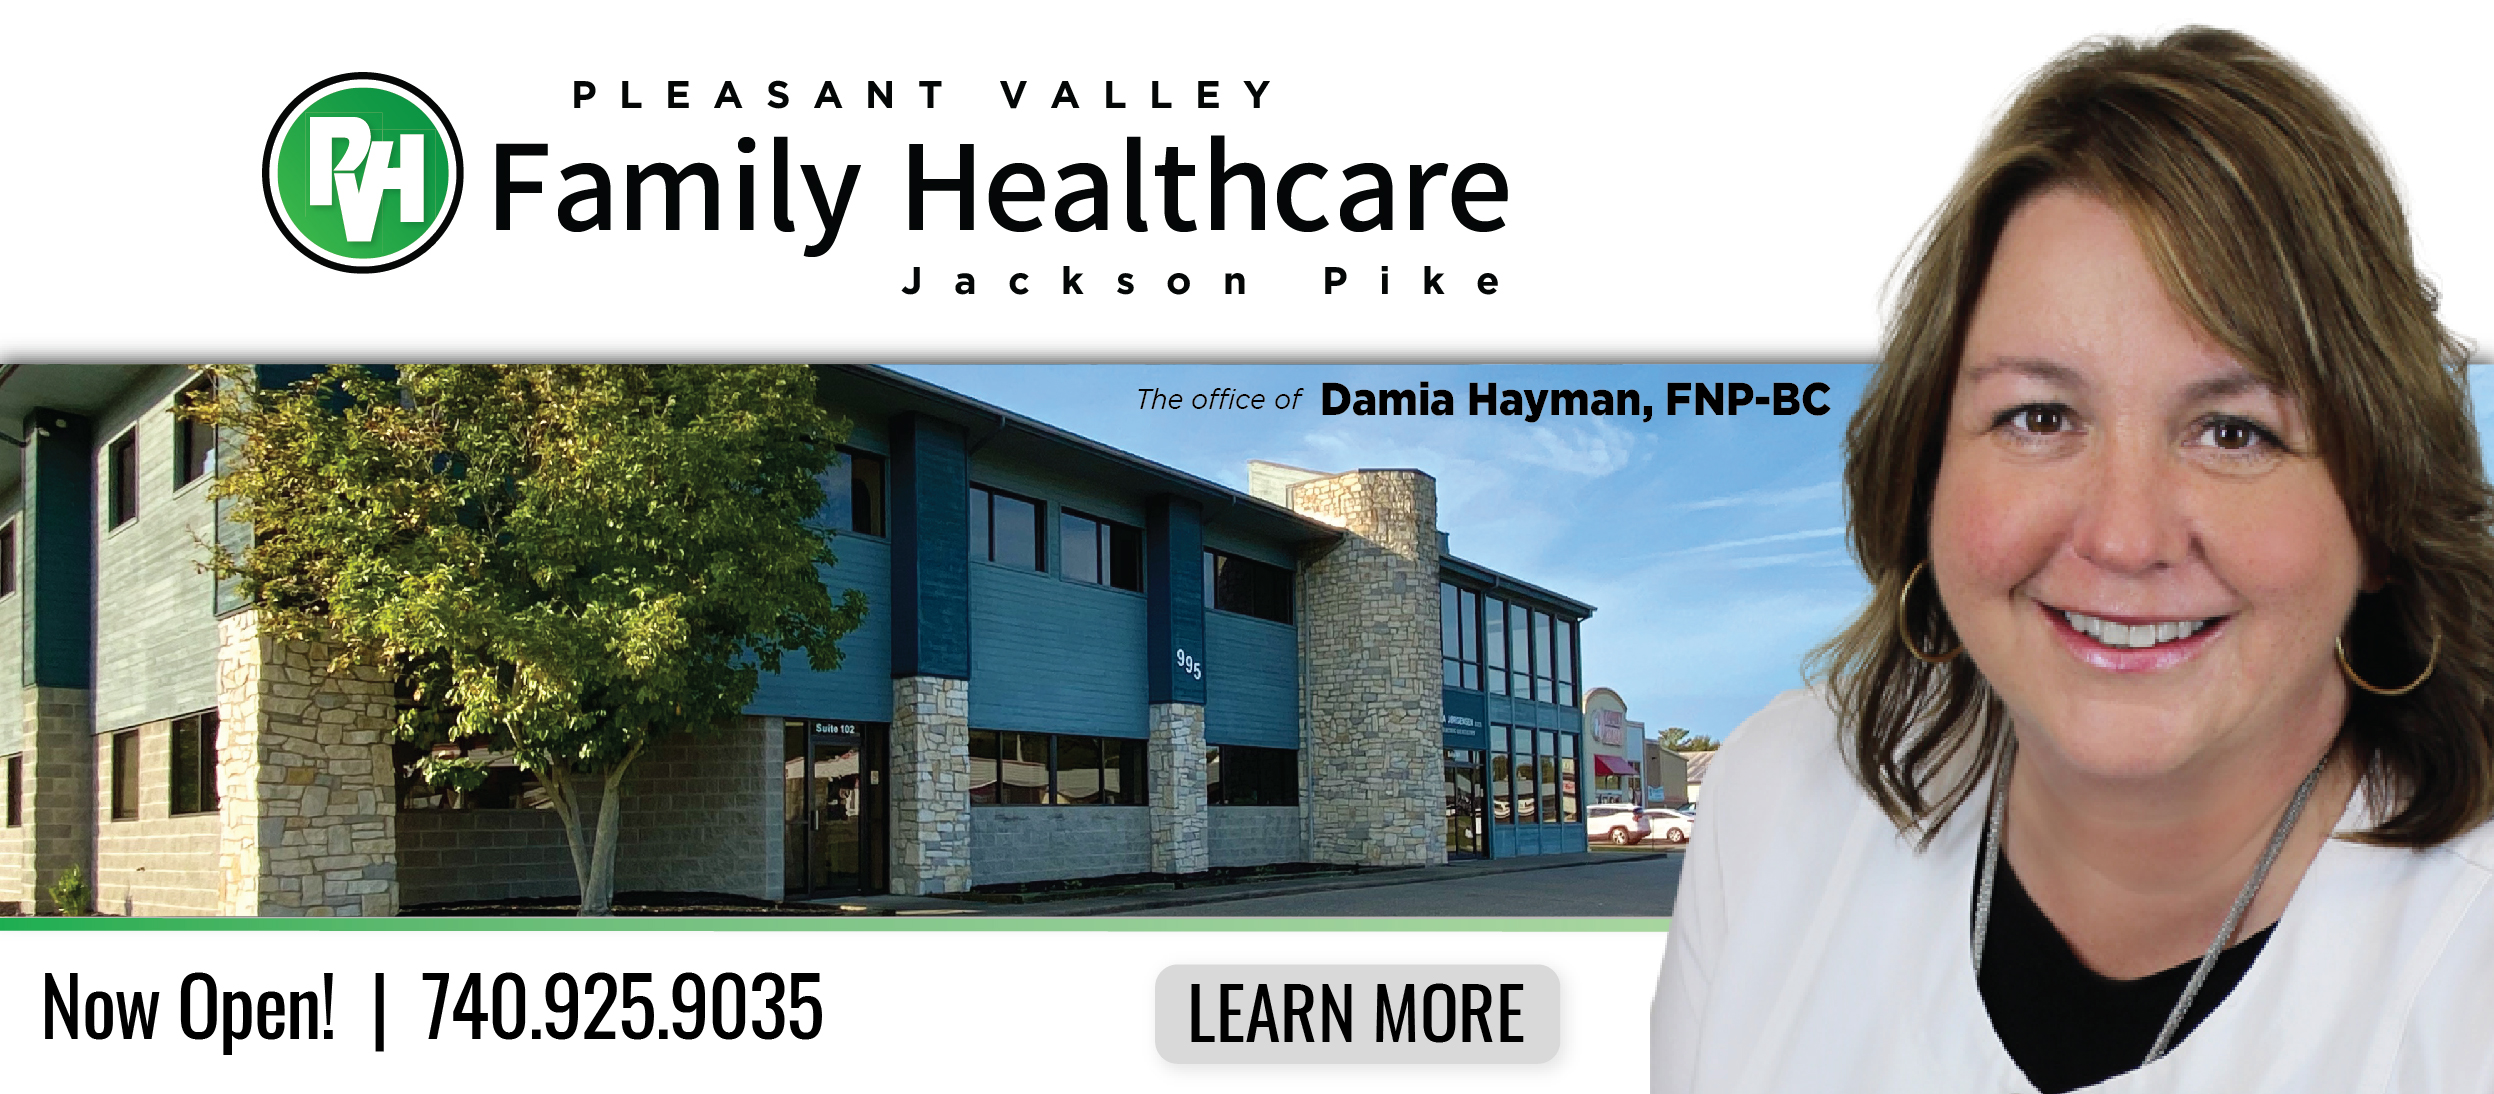 Pleasant Valley Family Healthcare Jackson Pike | The Office of Damia Hayman, FNP-BC | Now Open | 740.925.9035 | Learn more